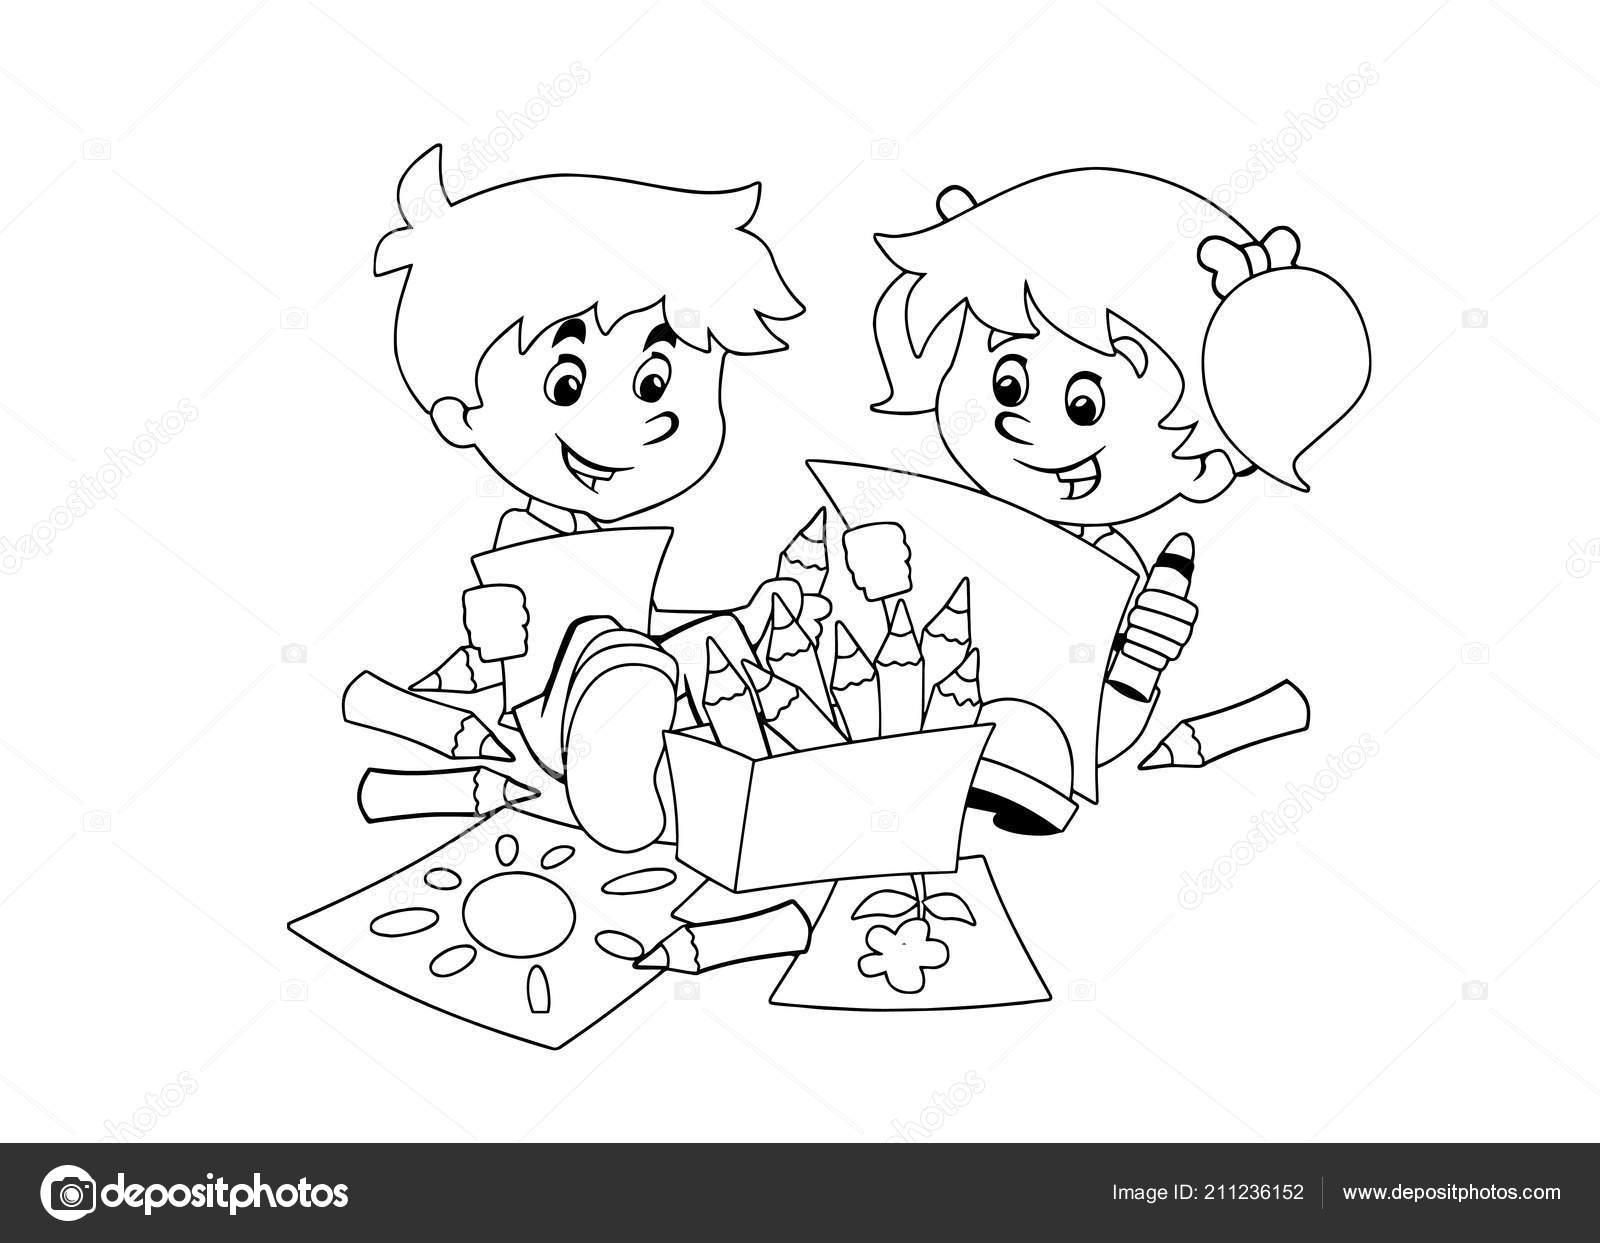 Cartoon Scene Kids Drawing Coloring Vector Coloring Page White